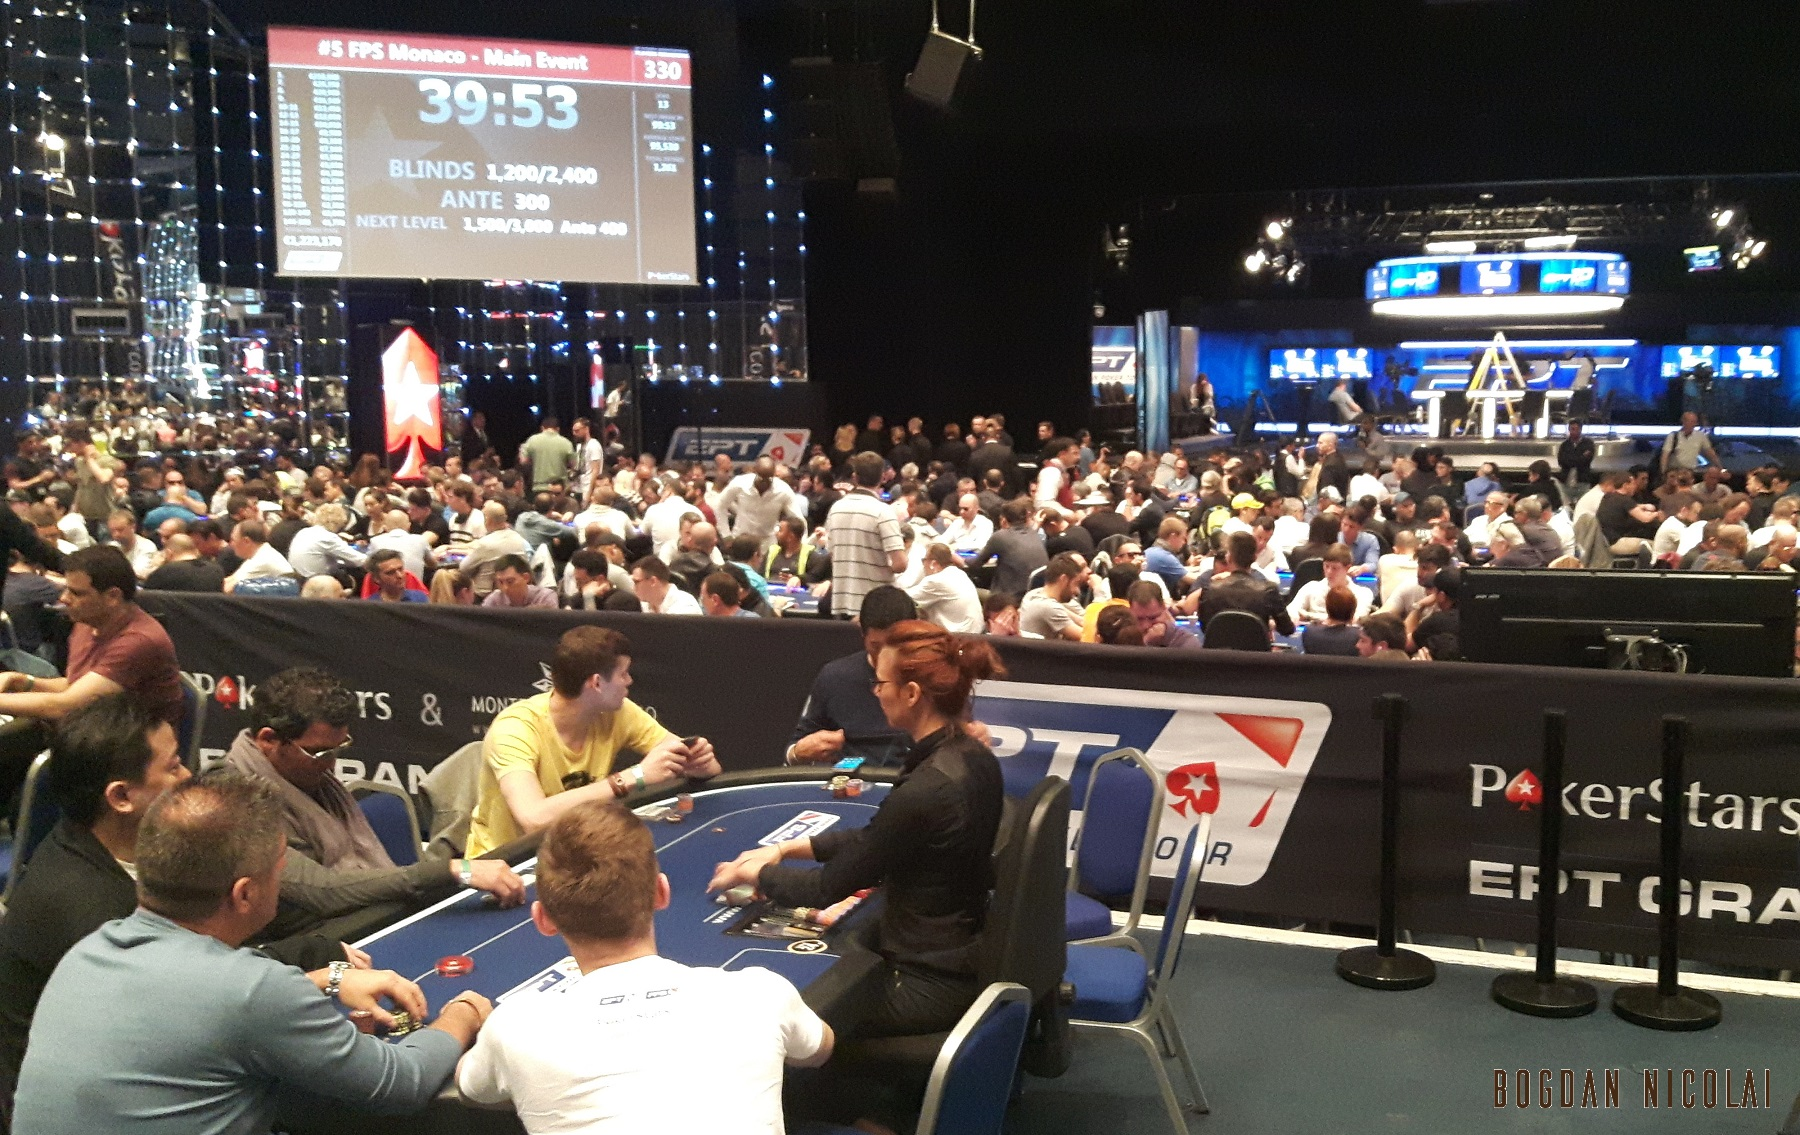 EPT Grand Final Poker Sters Credit Bogdan Nicolai